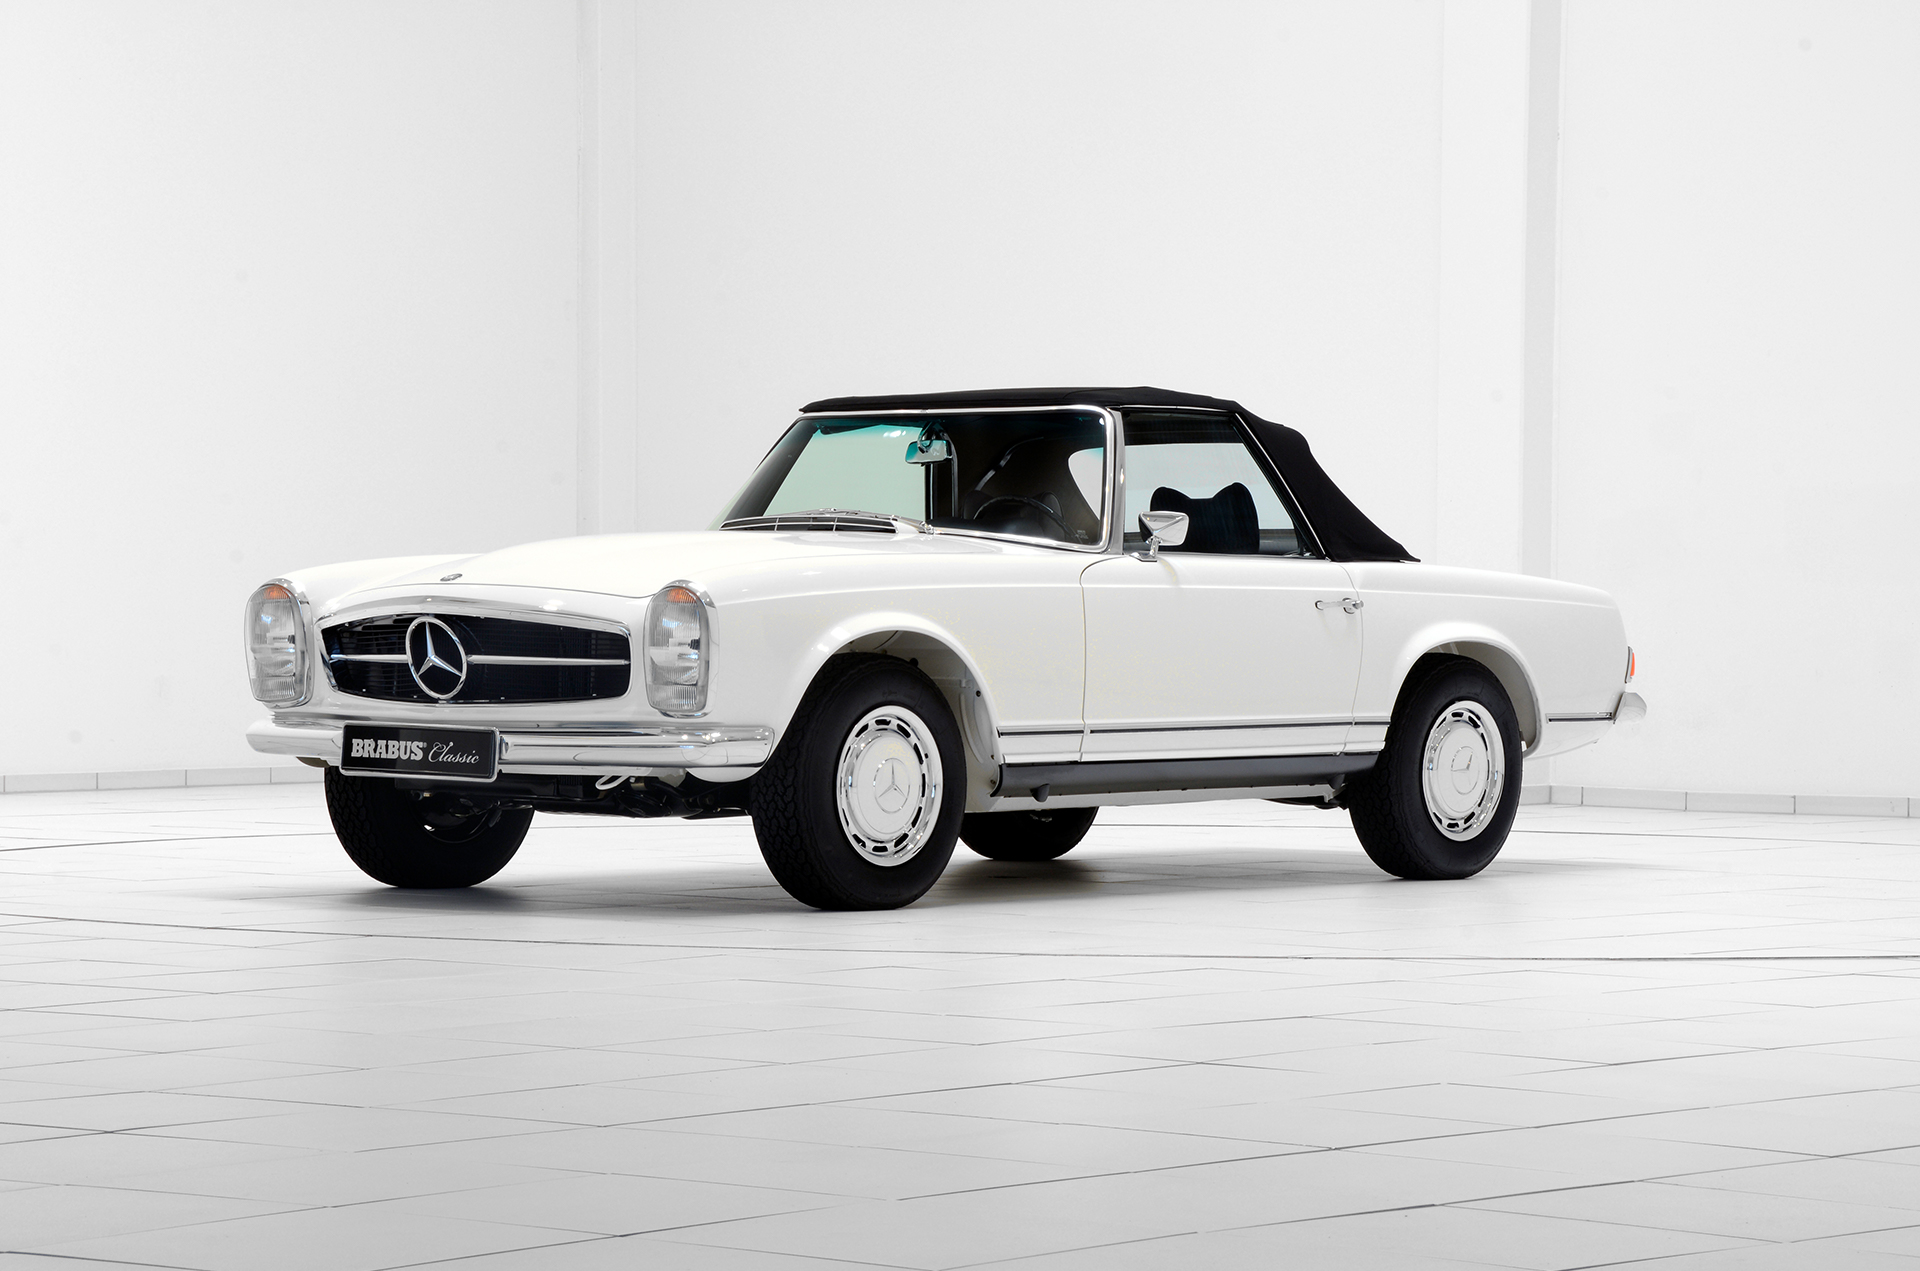 Brabus Classic – 280SL Pagoda – white with black interior